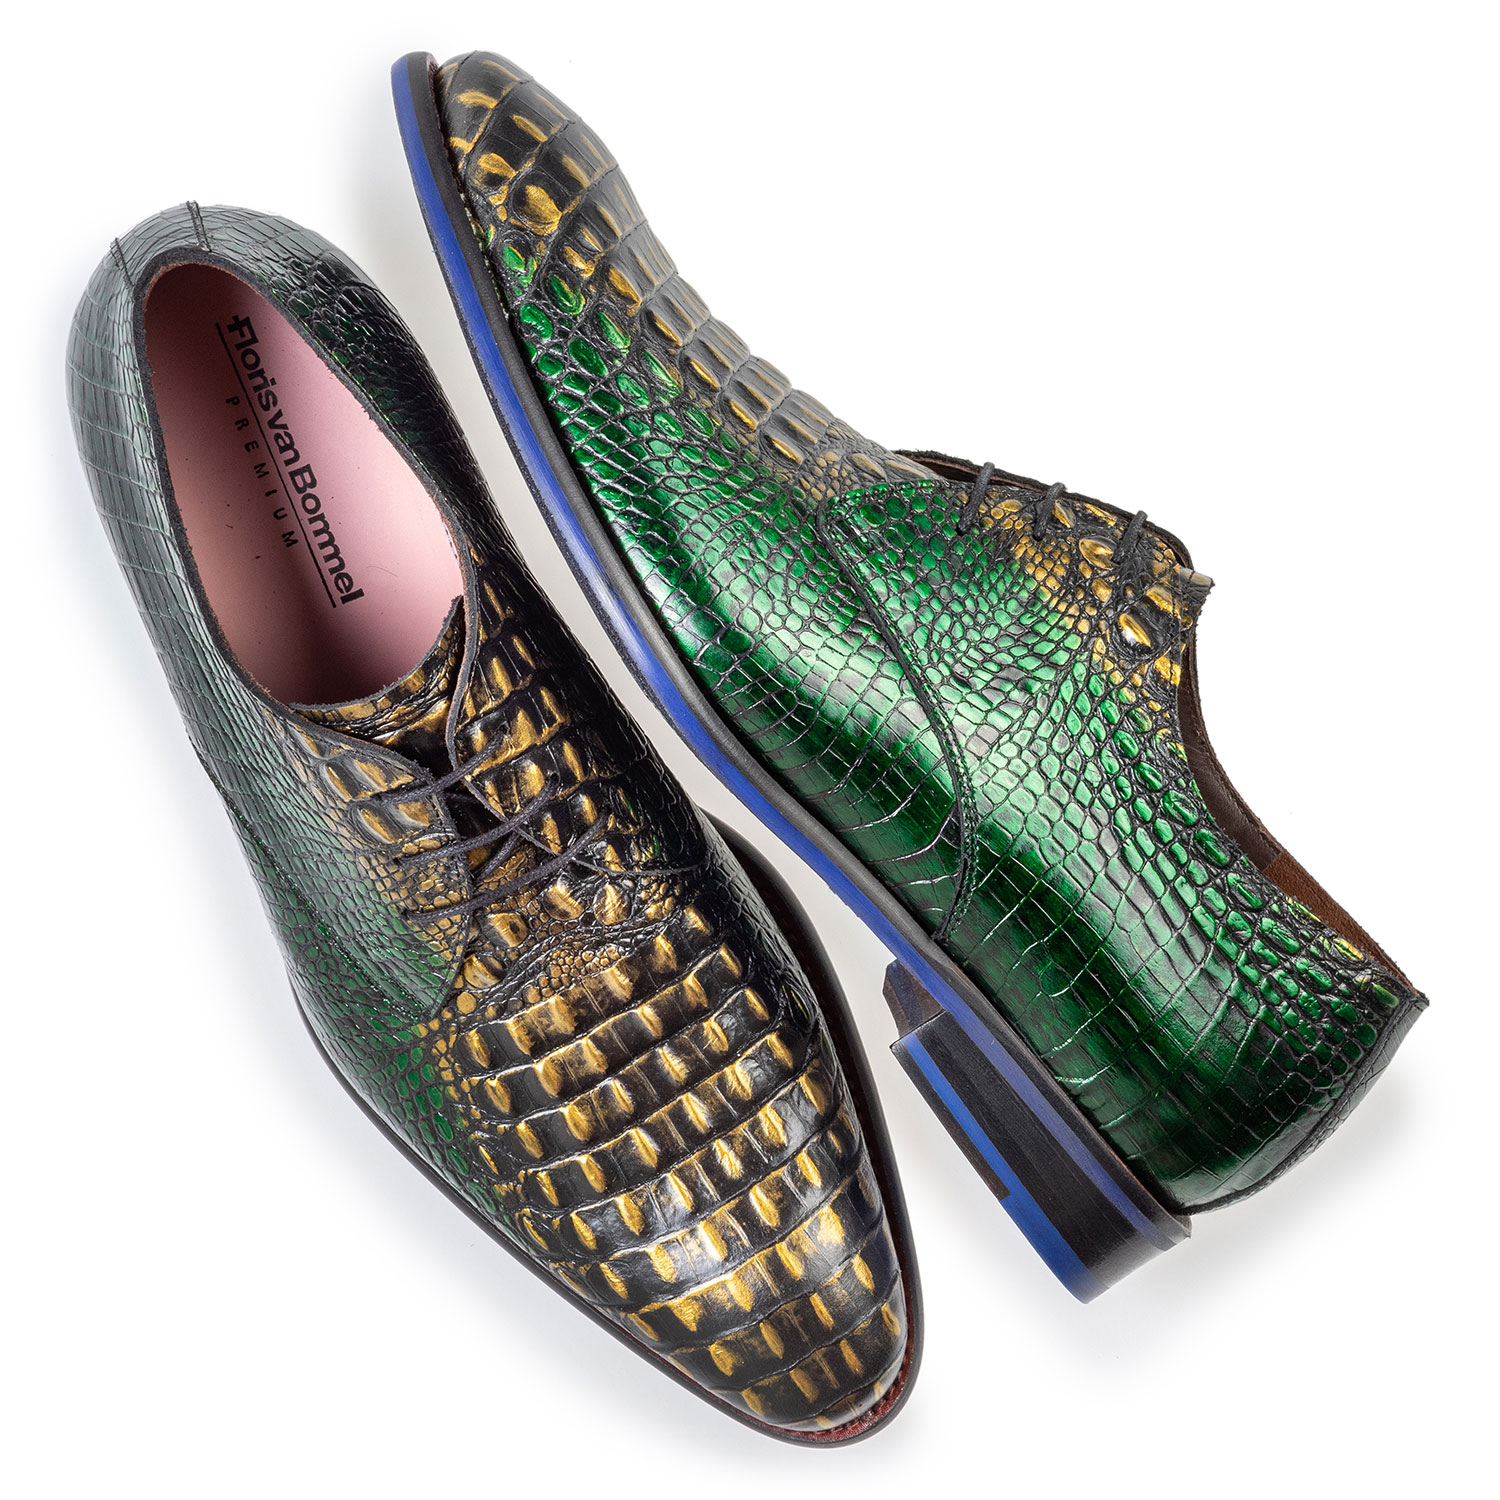 18167/06 - Lace shoe green croco leather